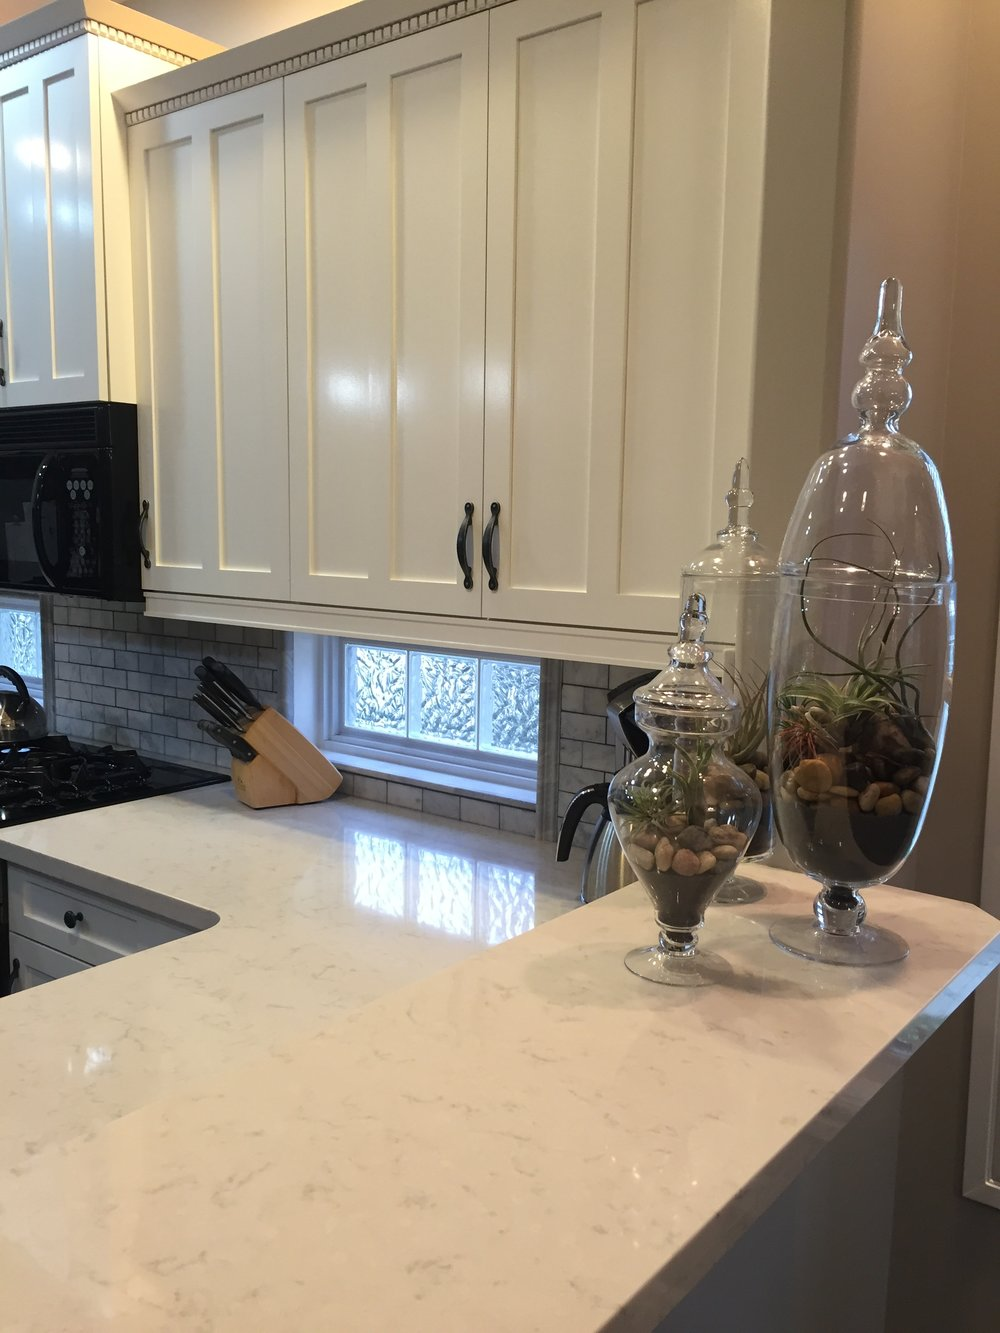 White Quartz countertop, painted cabinetry, marble backsplash.